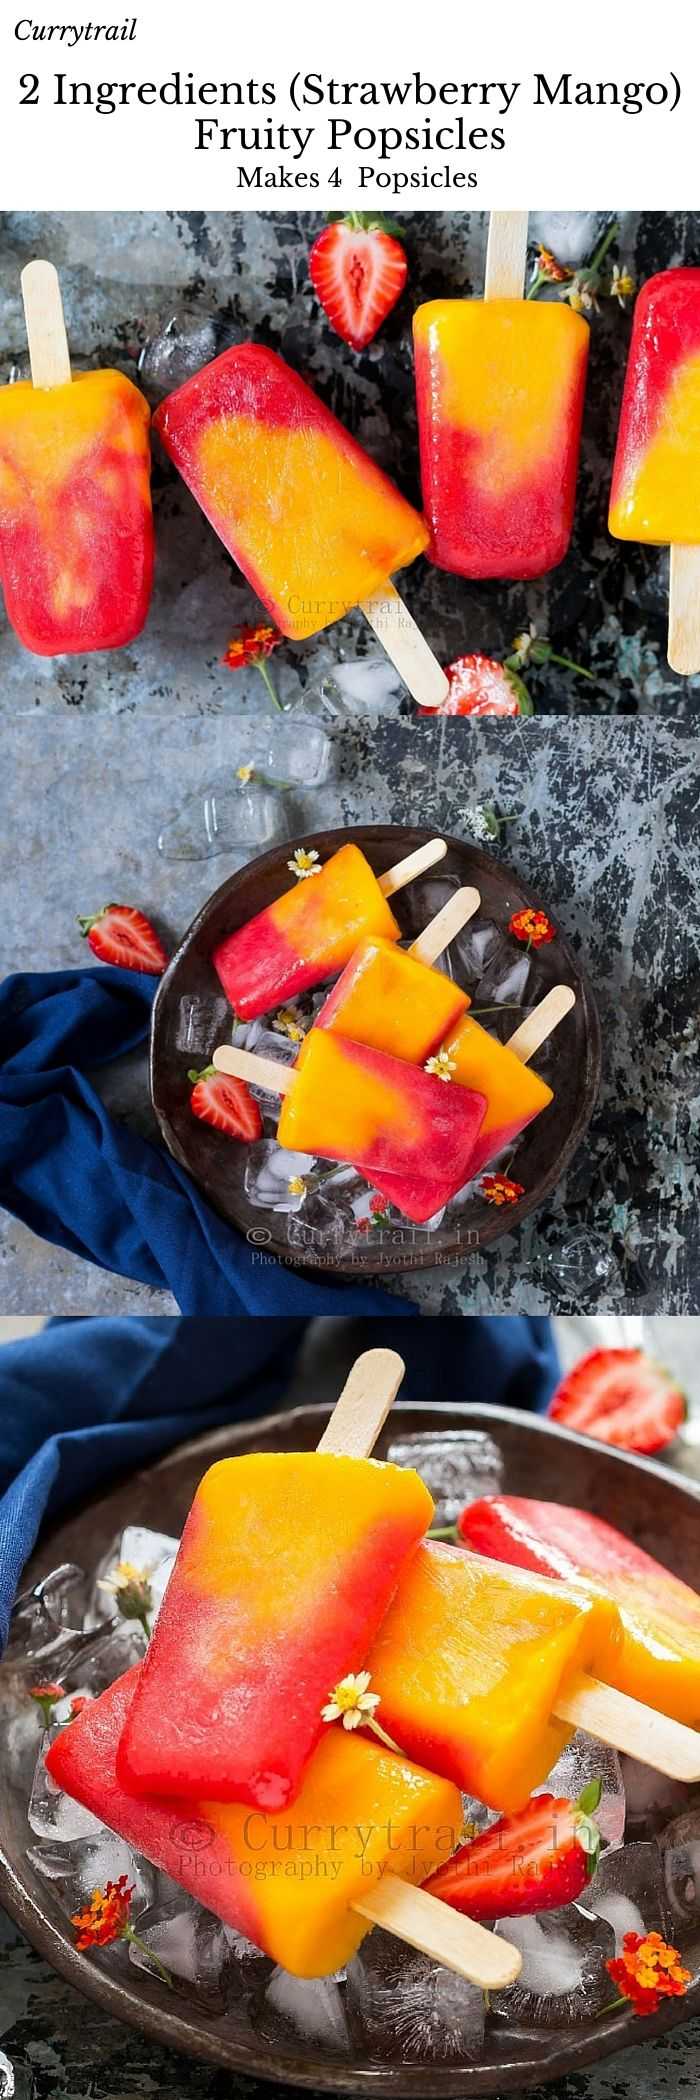 Strawberry Mango Popsicles | 2 Ingredient Popsicles